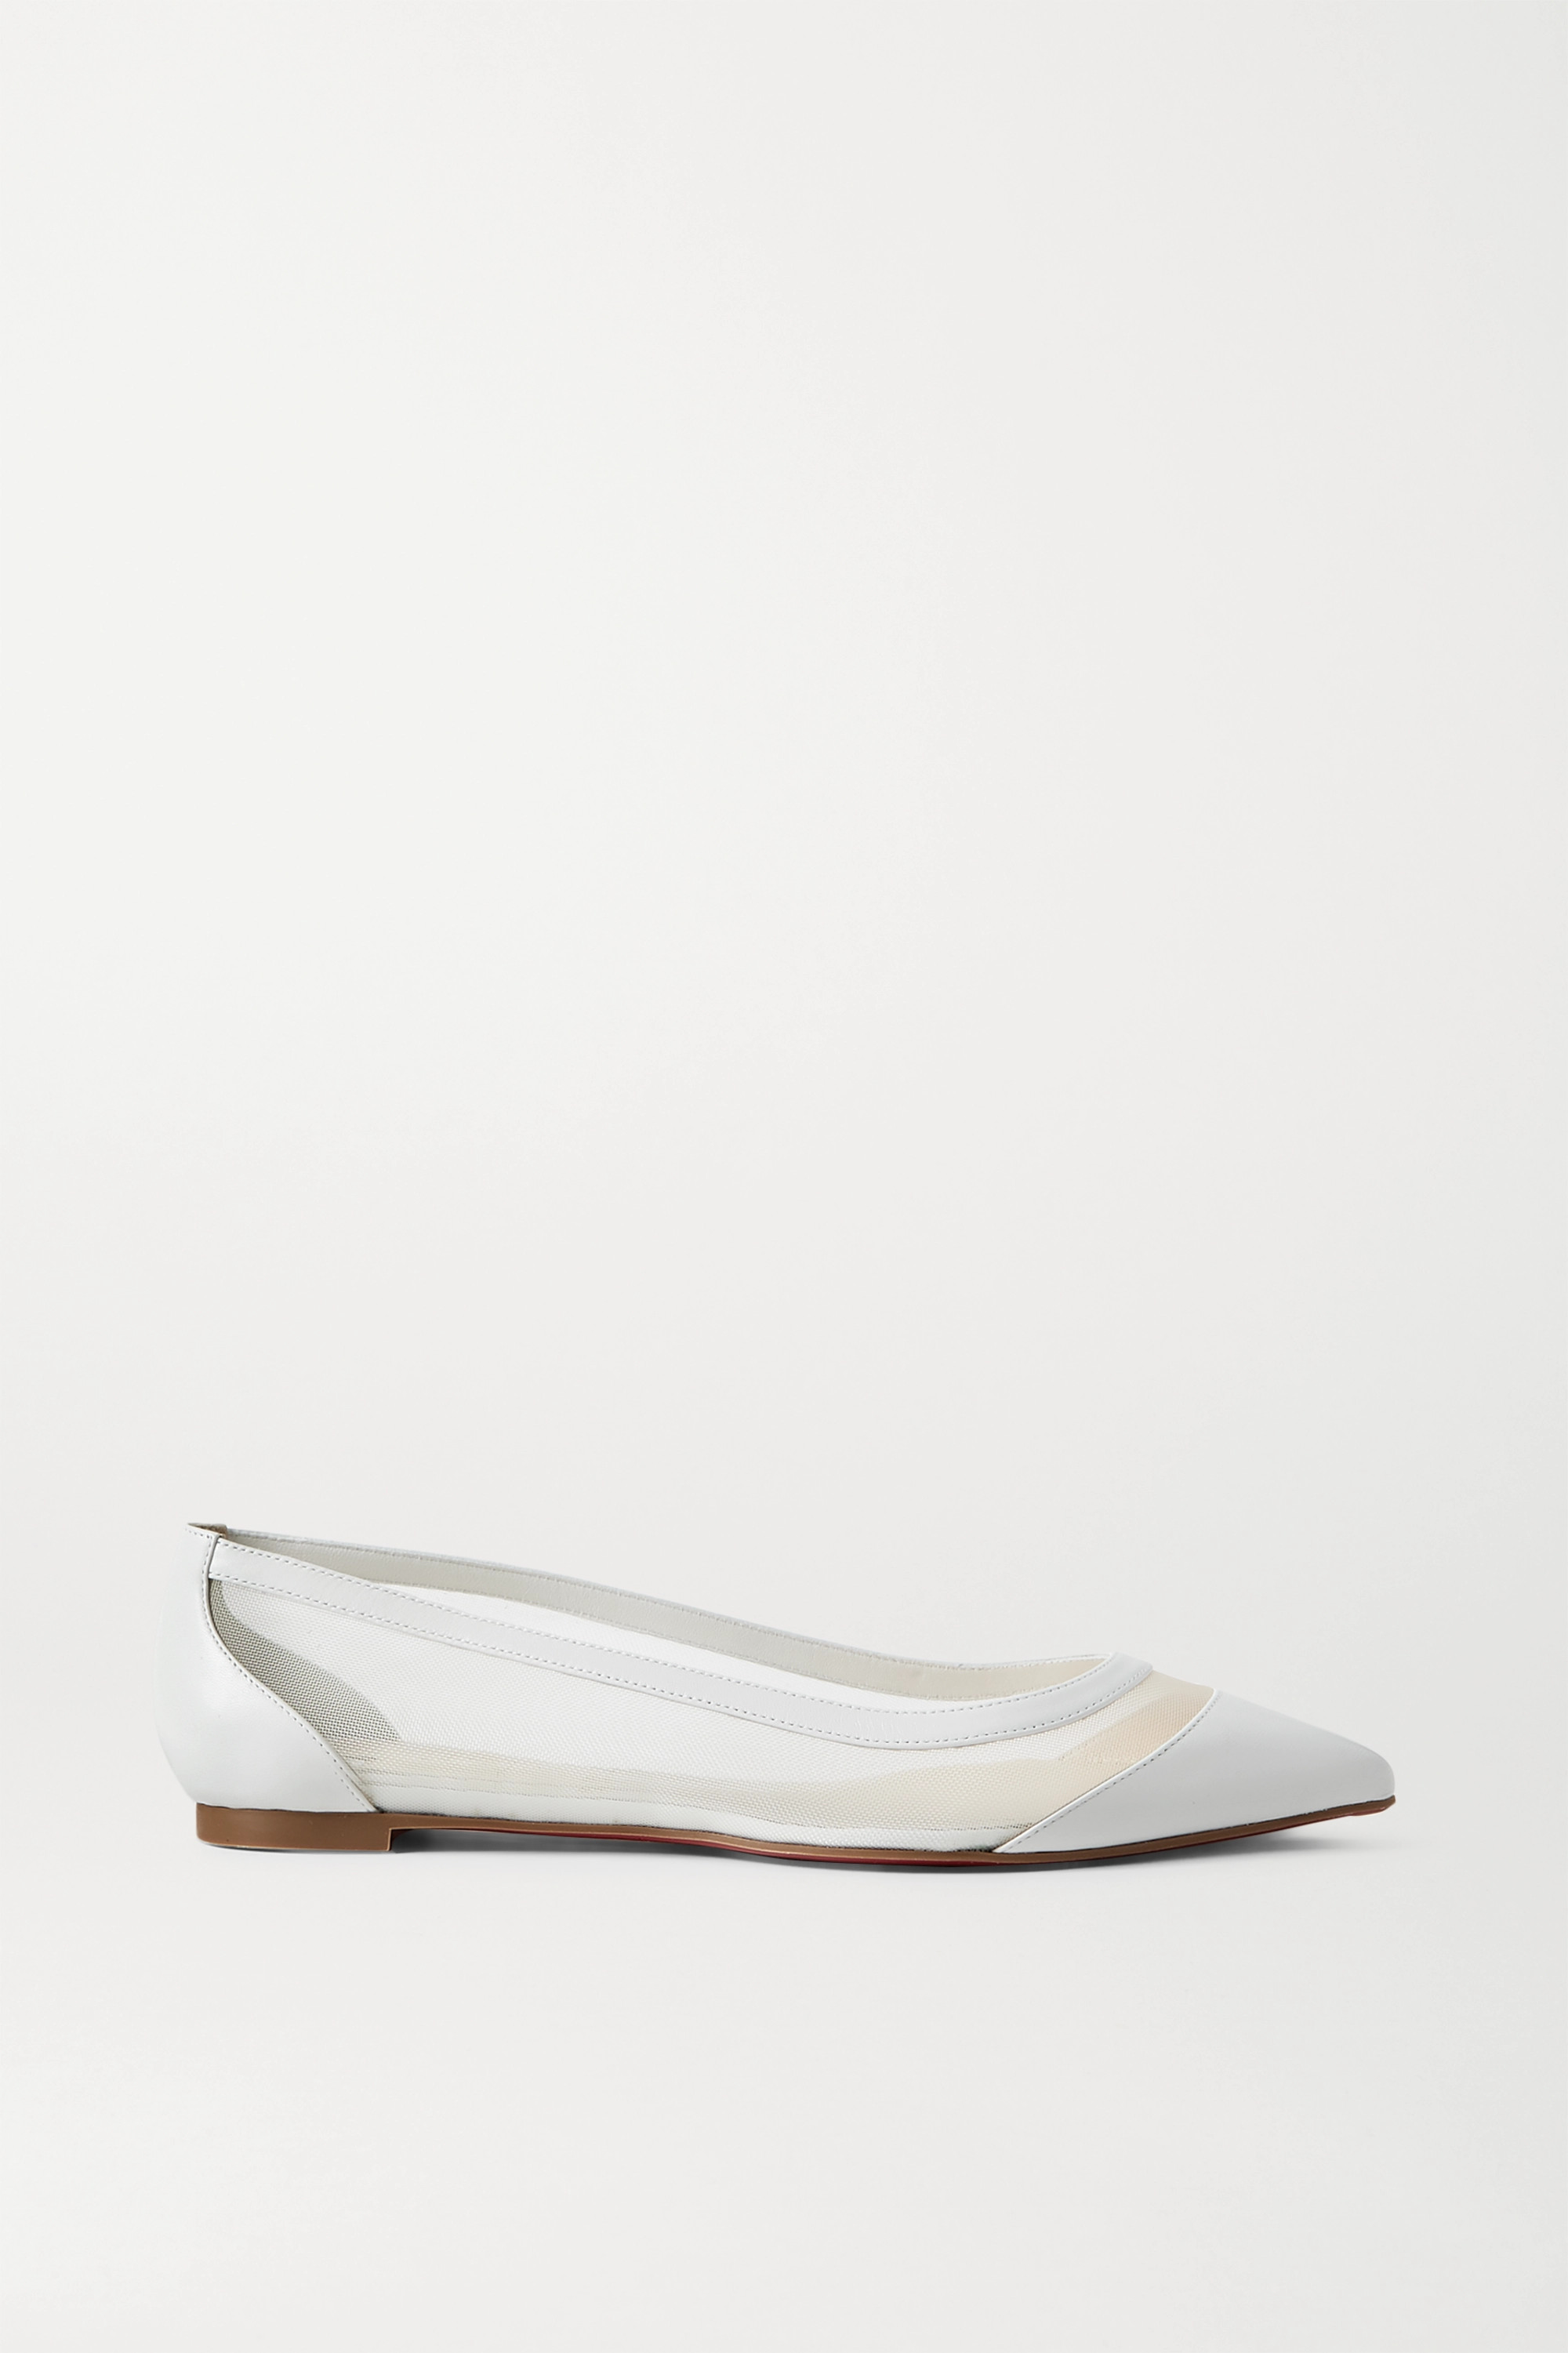 CHRISTIAN LOUBOUTIN Galativi leather and mesh point-toe flats